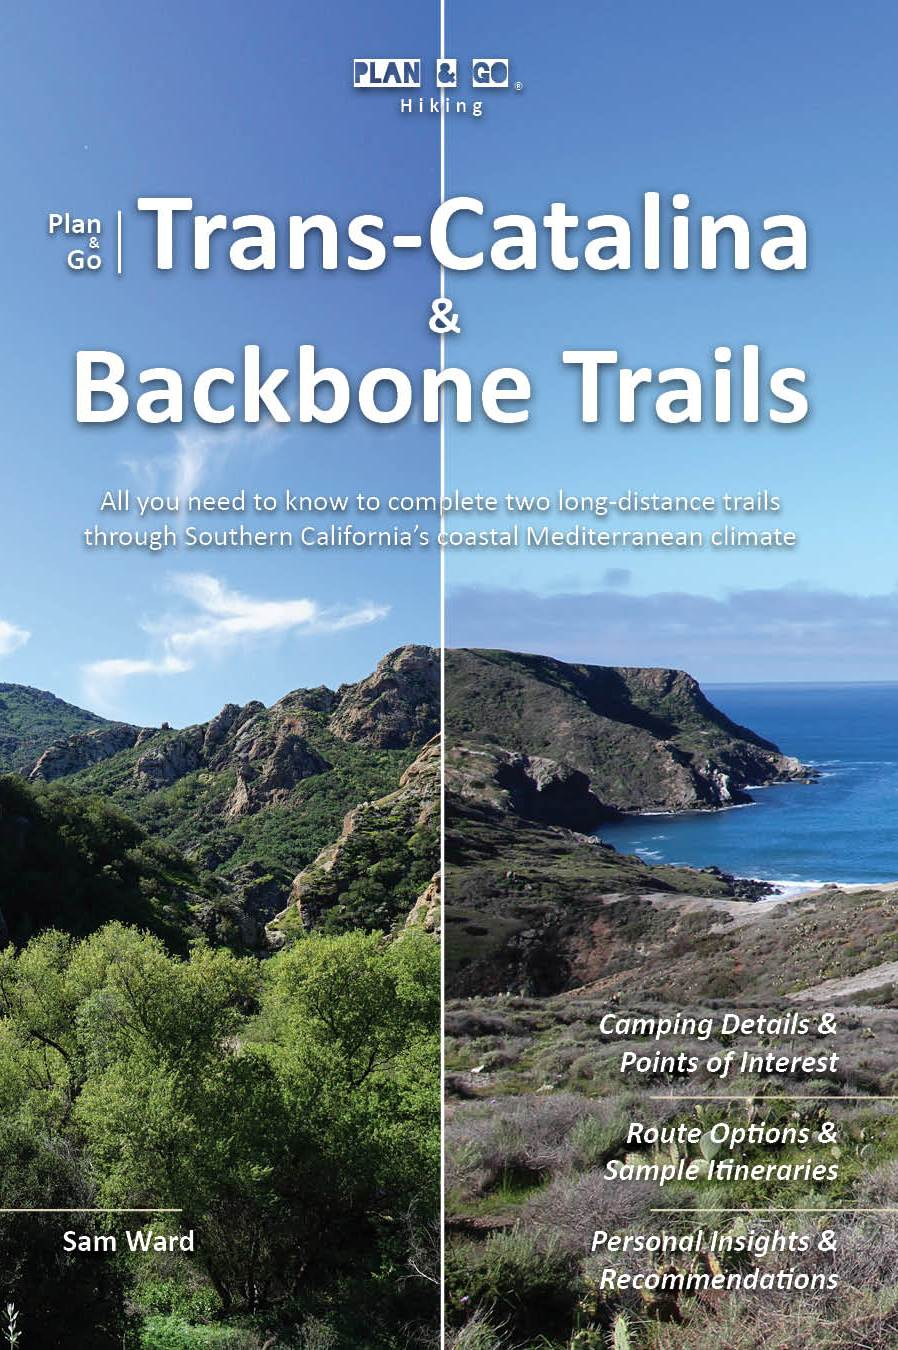 Plan & Go | Trans-Catalina & Backbone Trails